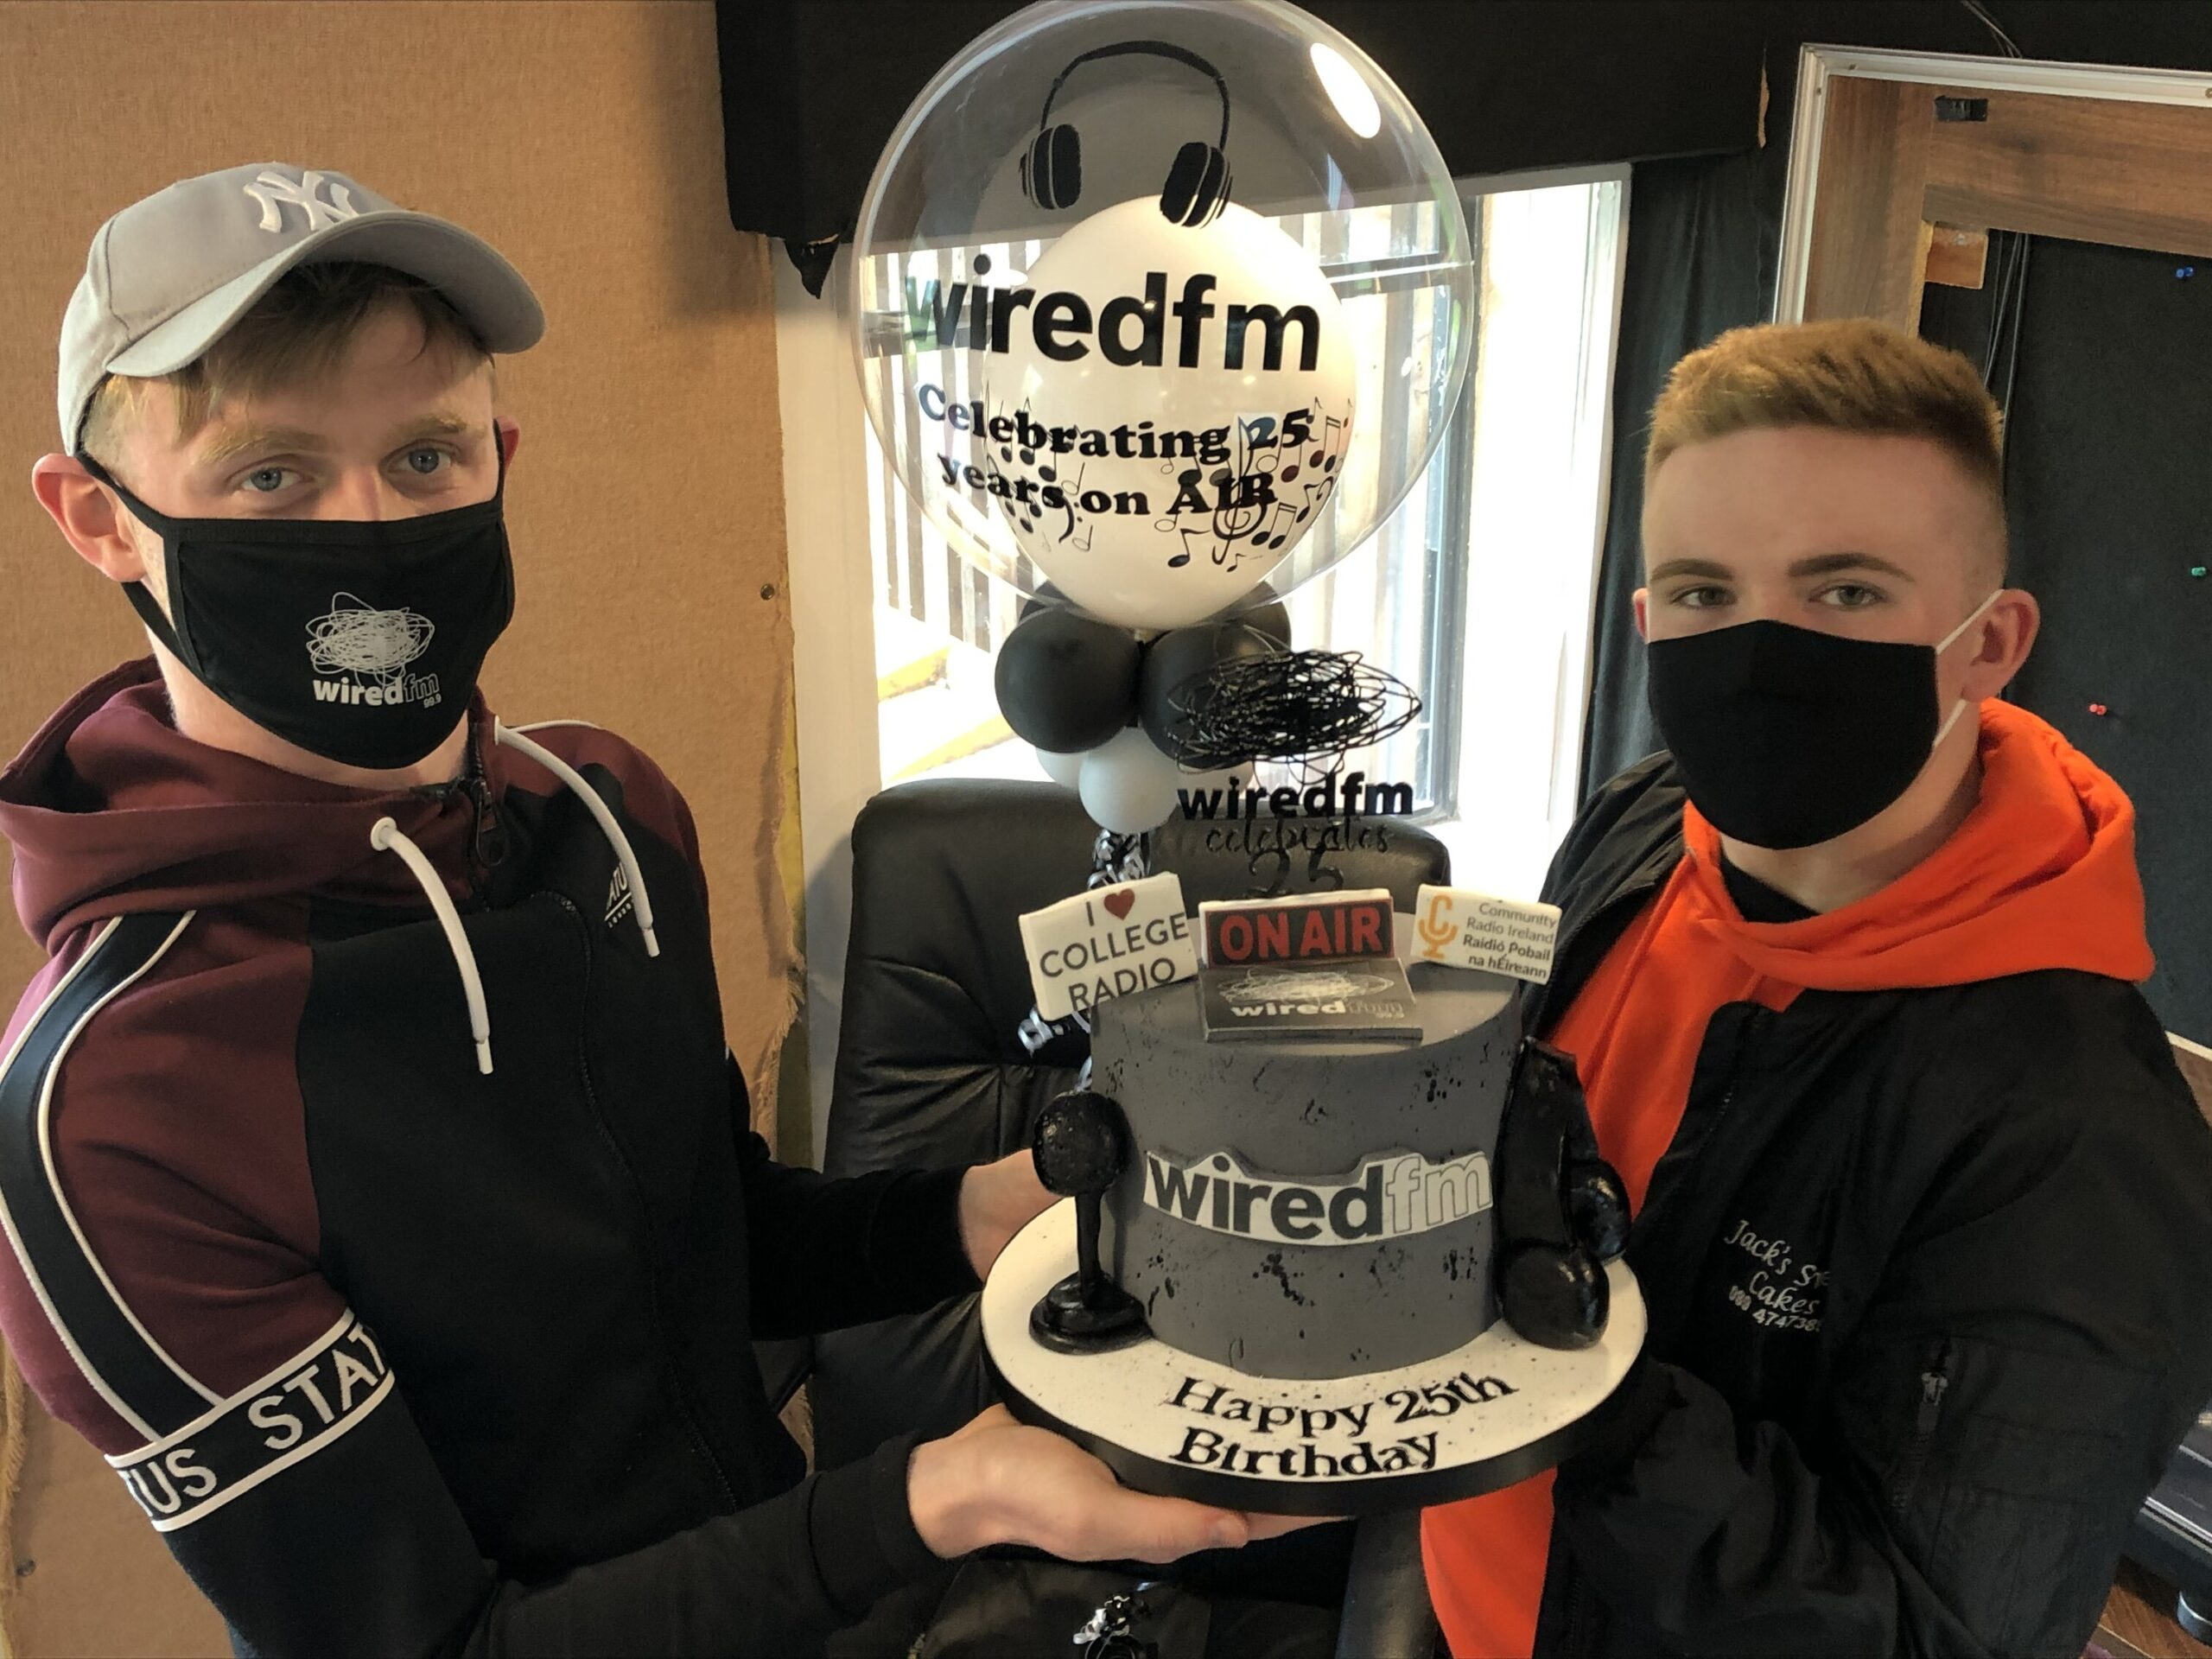 Wired FM 25th Anniversary – Wired FM, located at Mary Immaculate College (MIC) and Limerick Institute of Technology (LIT), celebrates its 25 years on air today